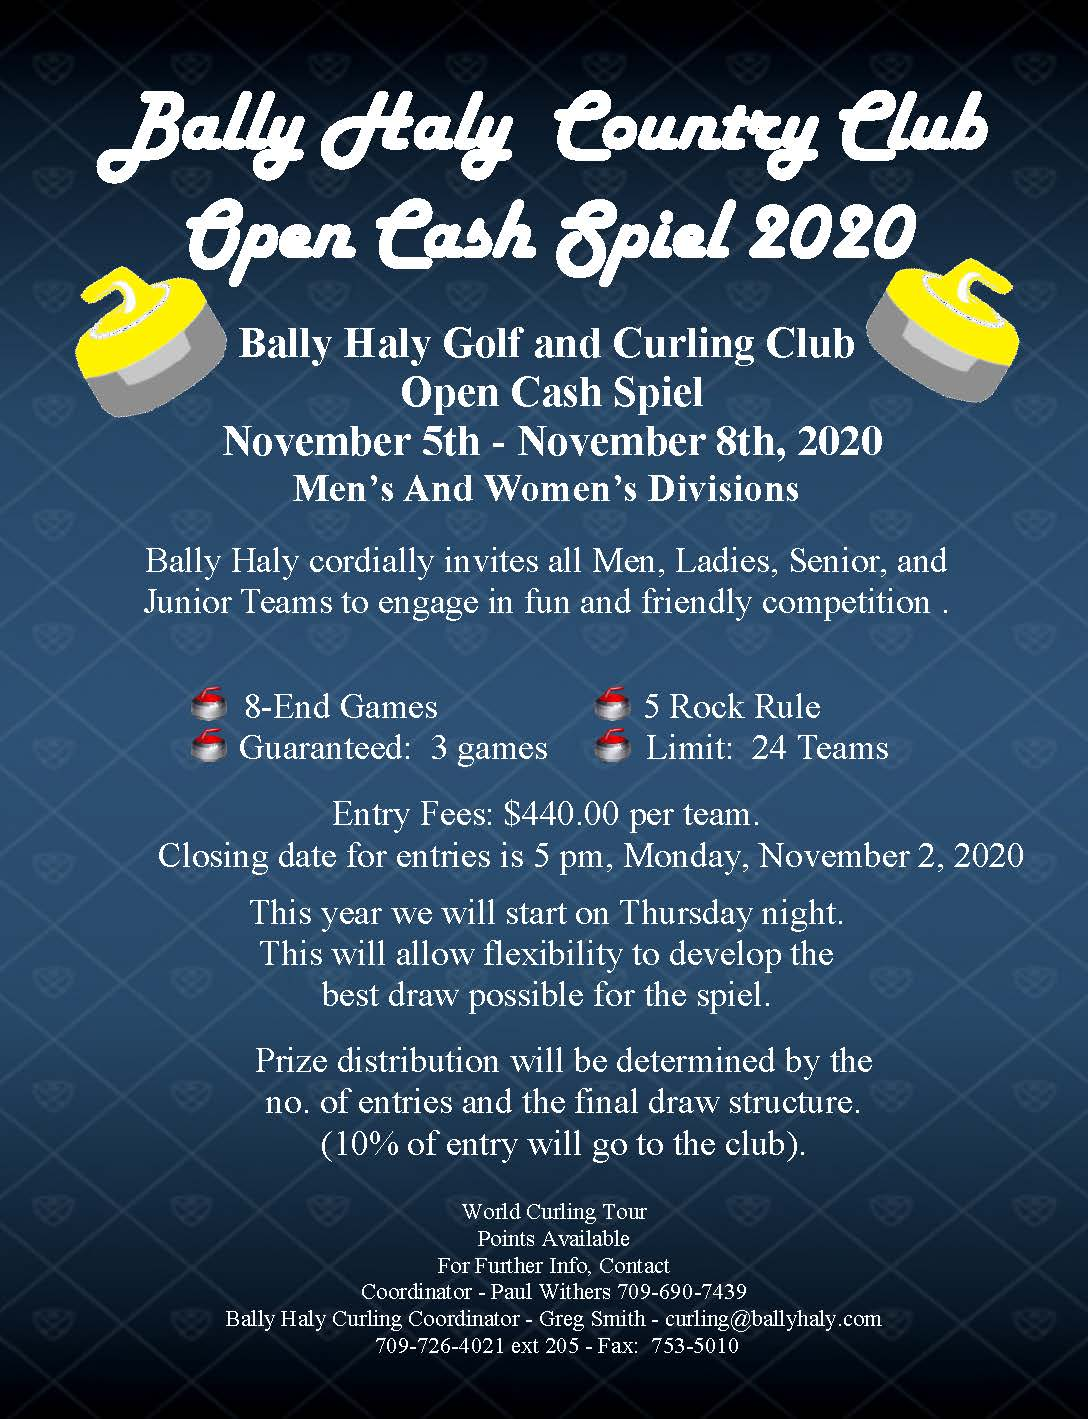 Bally Haly Open Cashspiel @ Bally Haly Country Club